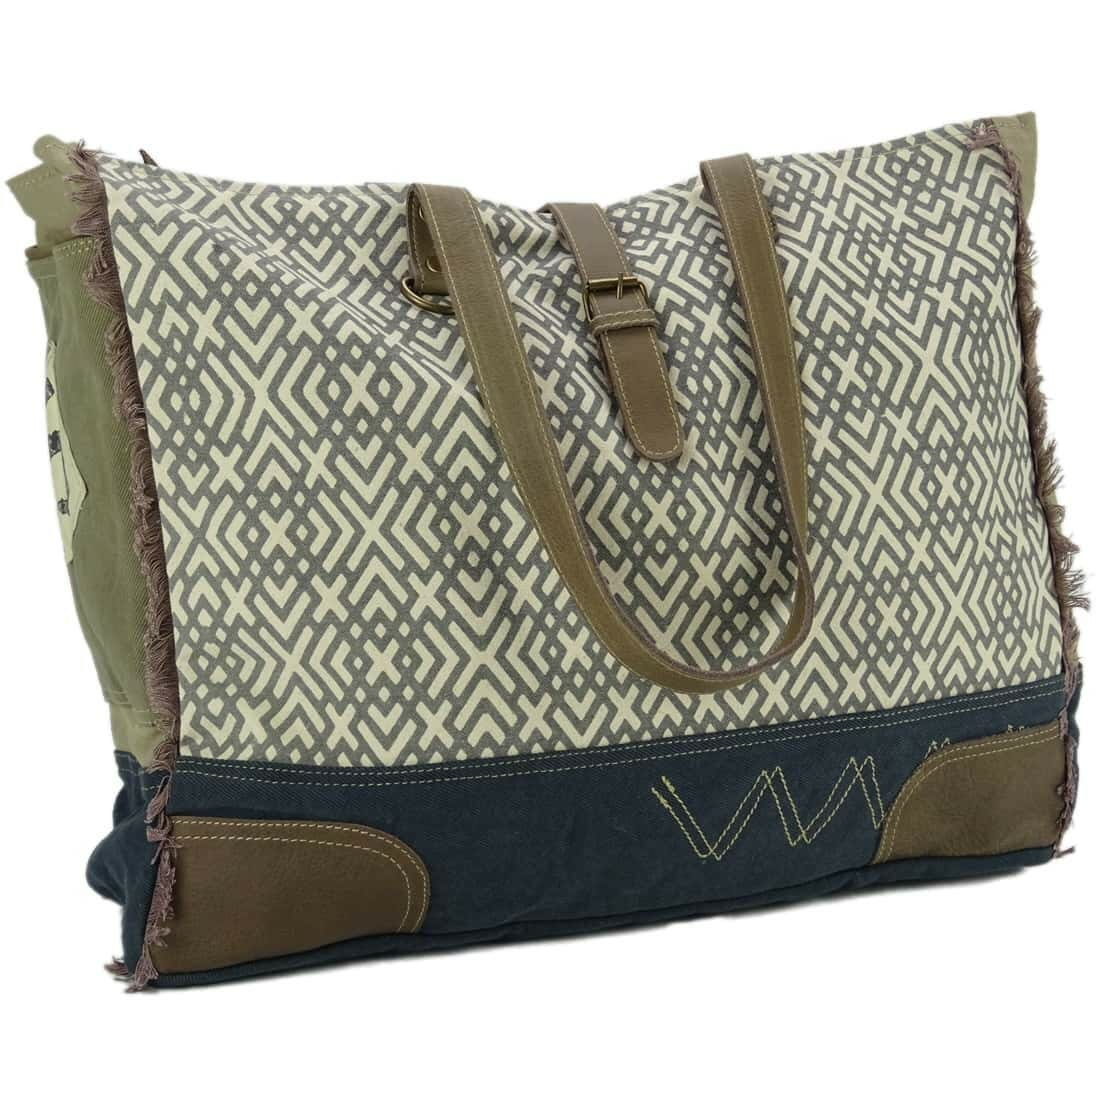 Myra Bag Big-Shopper Viviane links voor2